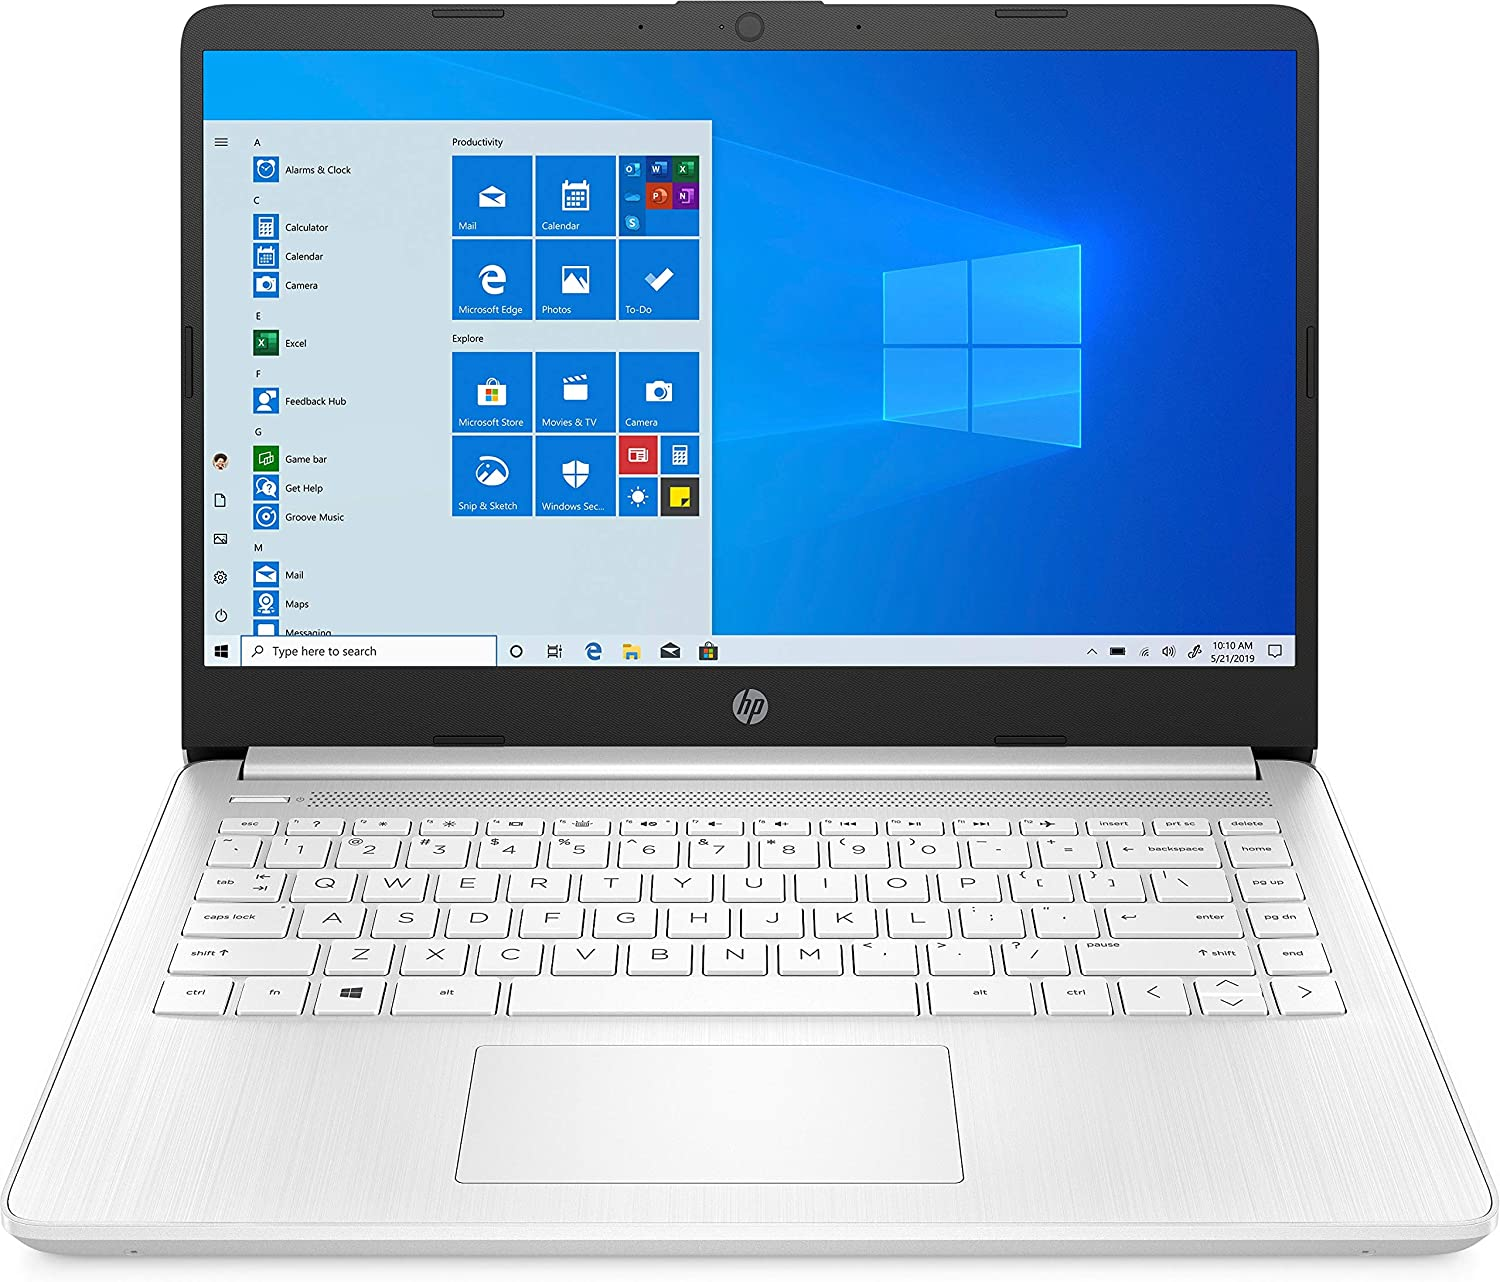 "HP 14 Series 14"" Laptop AMD Athlon 3020e 4GB RAM 64GB eMMc Snowflake White - AMD Athlon 3020e Dual-core - AMD Radeon Graphics - HP TrueVision 720p HD Camera - Windows 10 Home in S Mode - 10 hr ba"